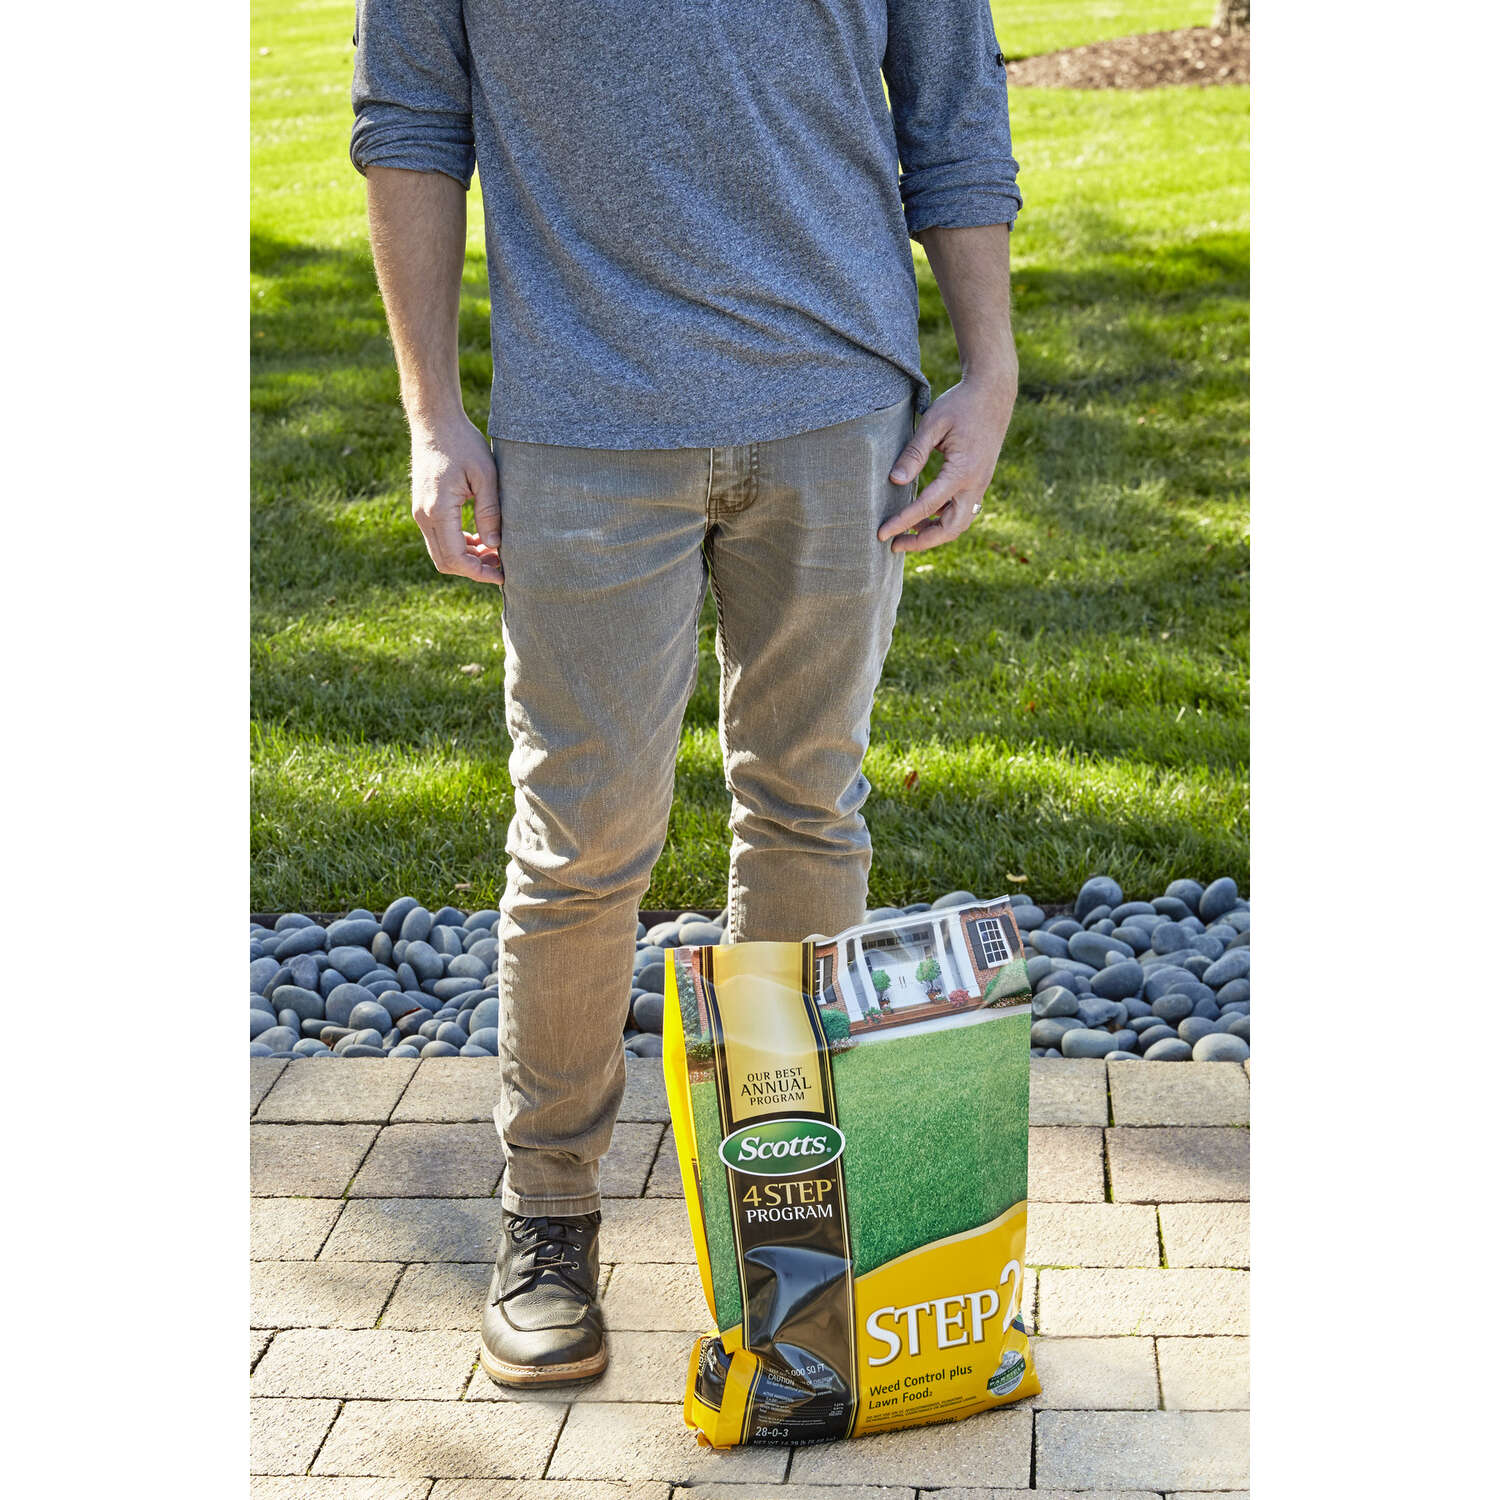 Scotts  4 Step Program  Fertilizer & Seed  For All Grass Types